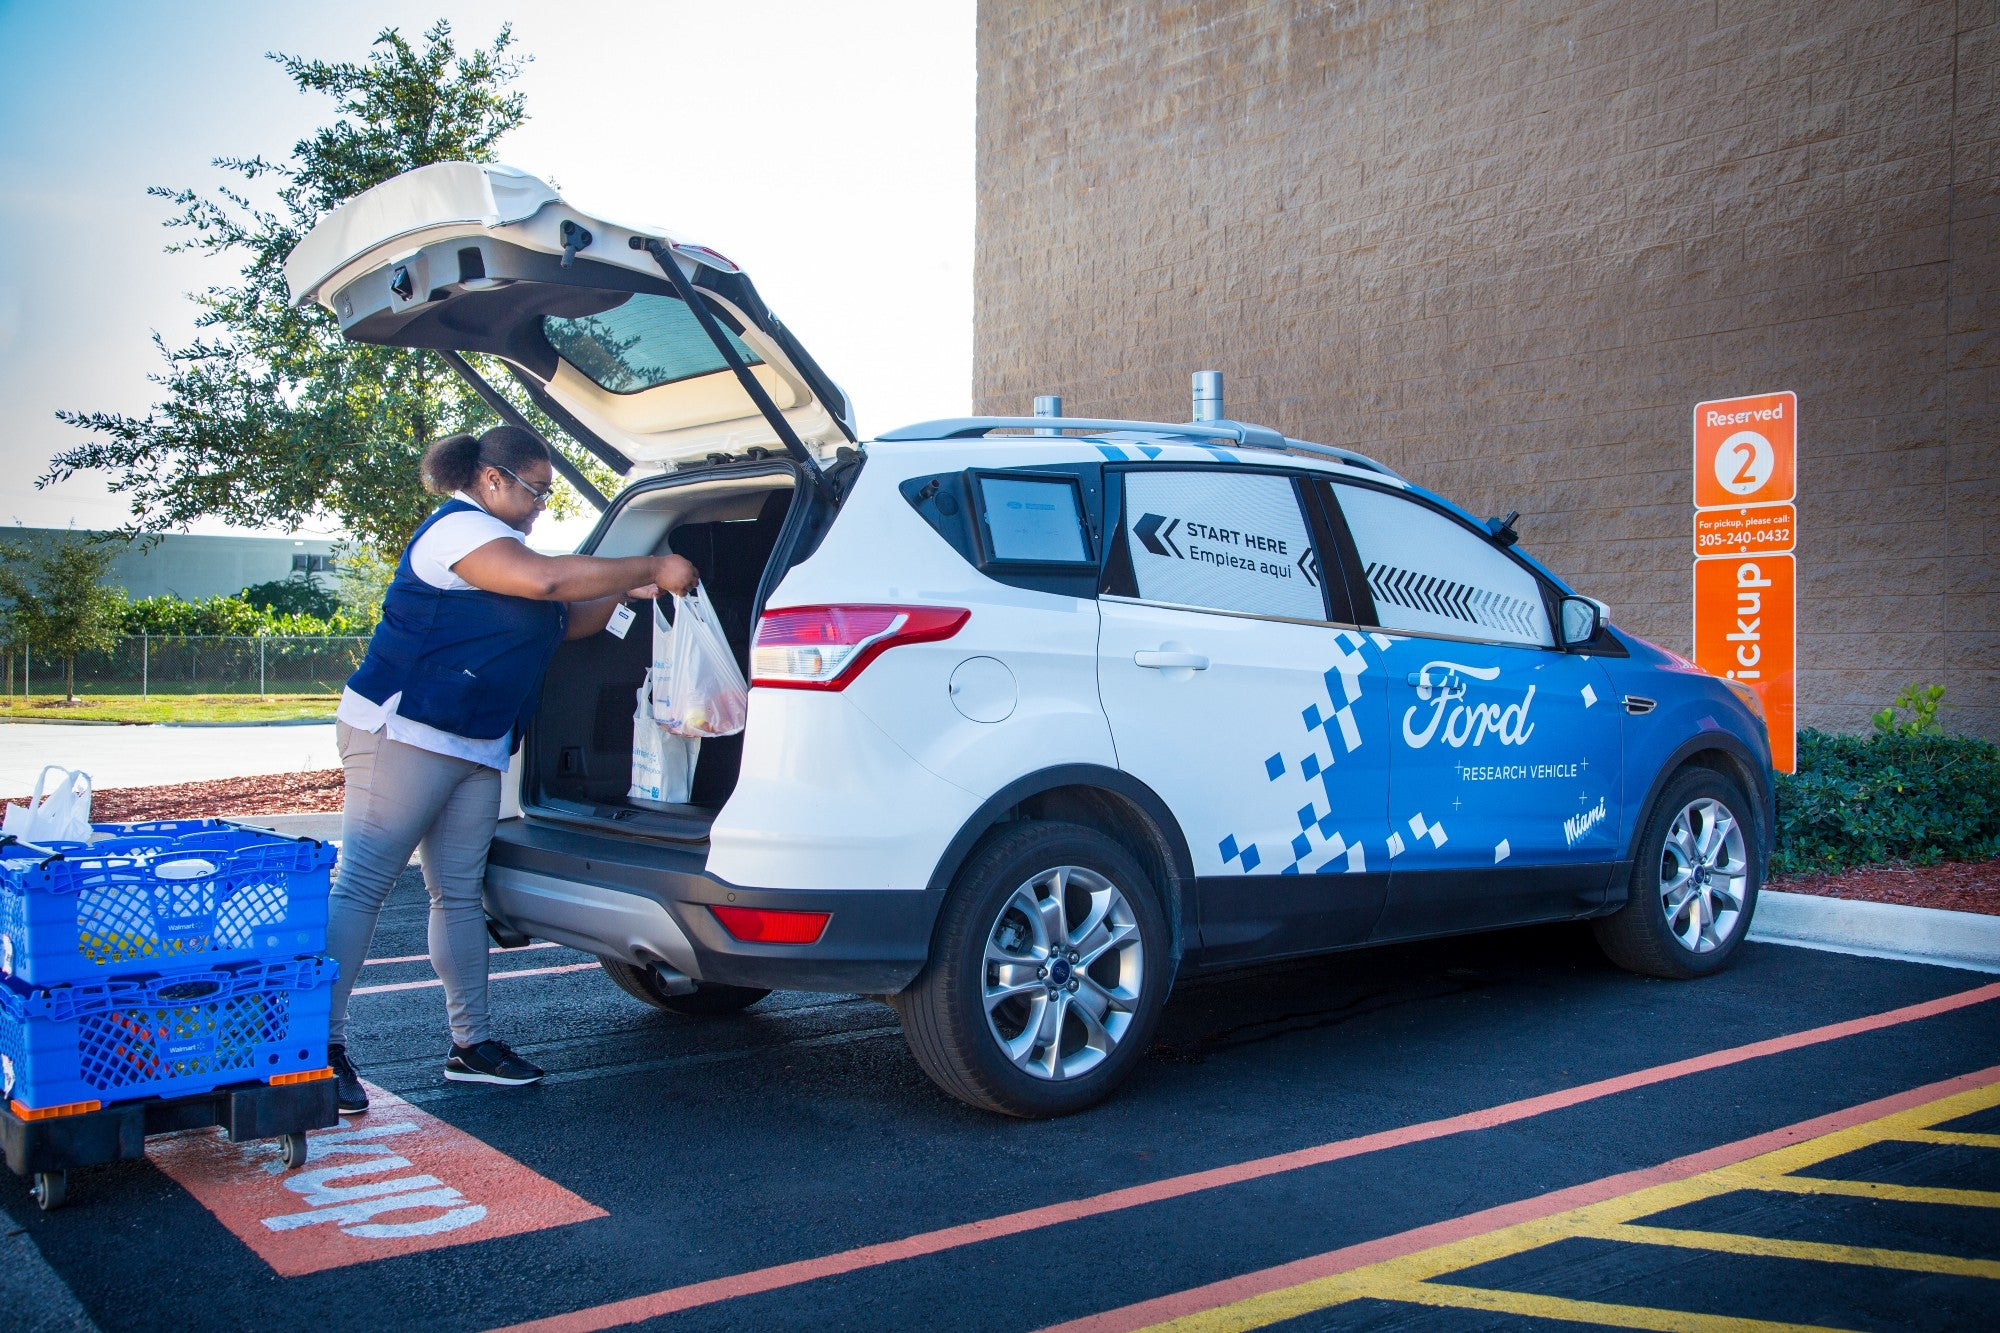 Delivering groceries with self-driving cars may be even trickier than transporting people